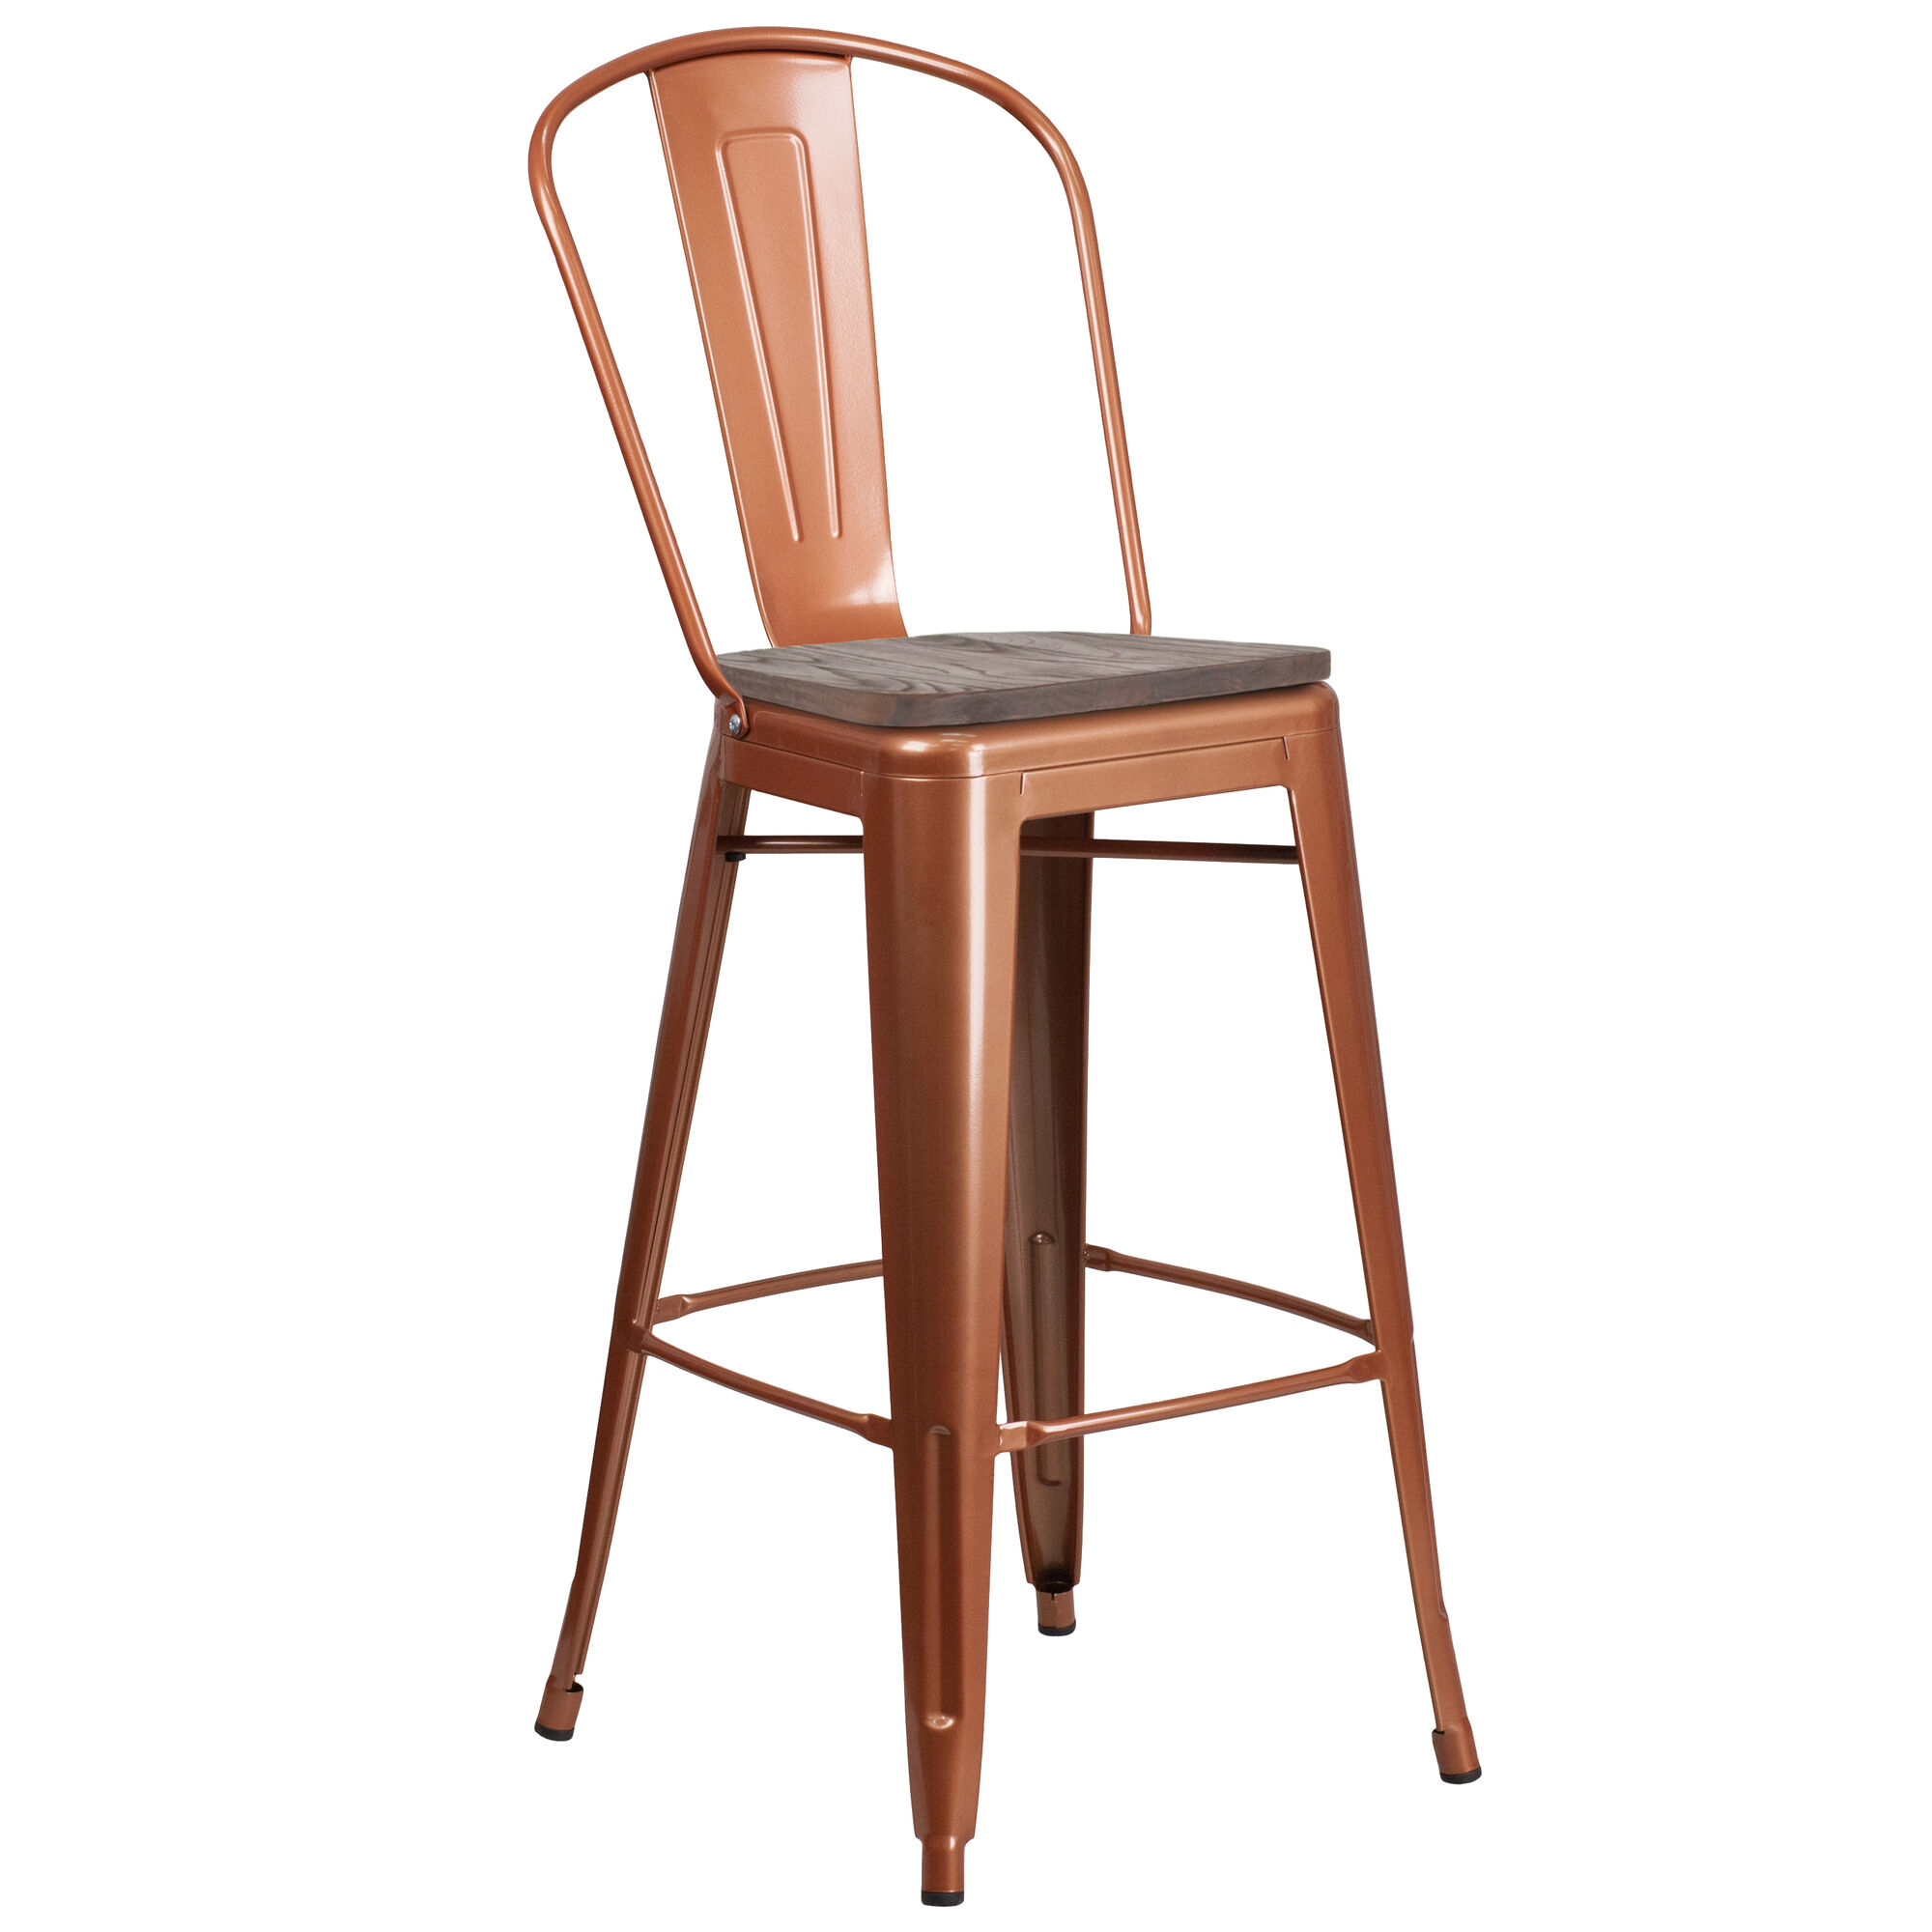 Strange 30 High Copper Metal Barstool With Back And Wood Seat Onthecornerstone Fun Painted Chair Ideas Images Onthecornerstoneorg